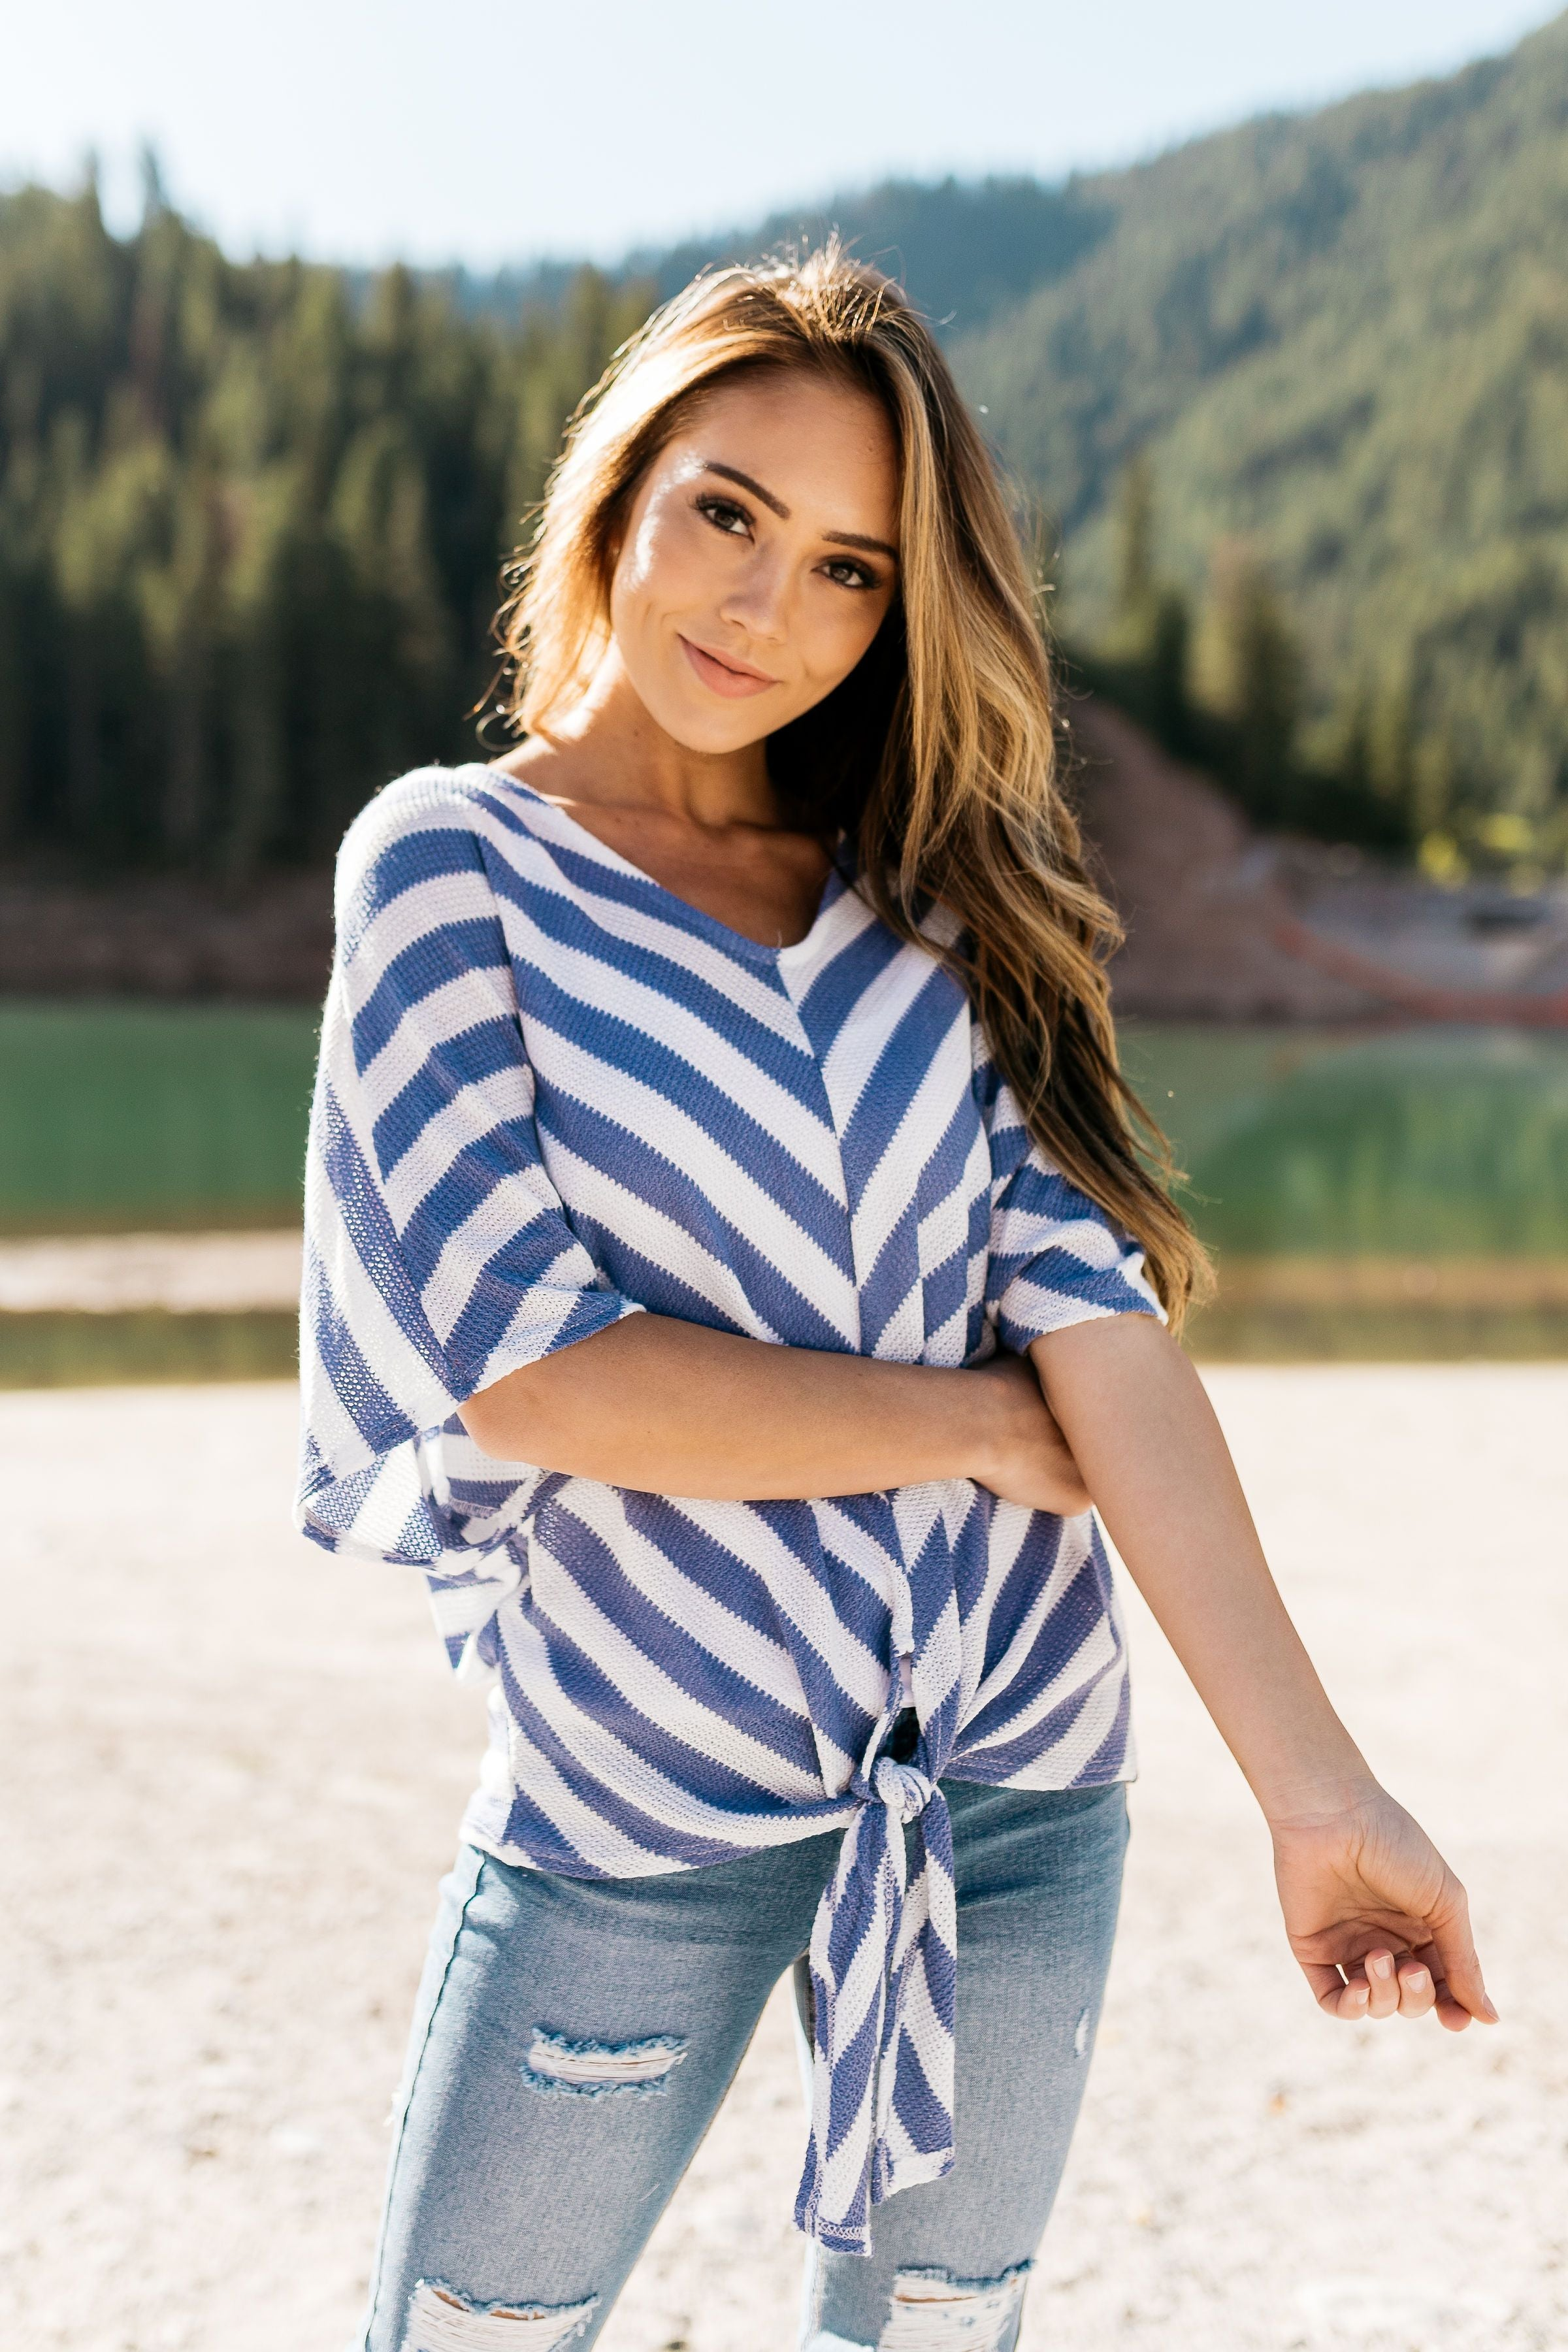 Blue + White Stripe Woven Top - ALL SALES FINAL